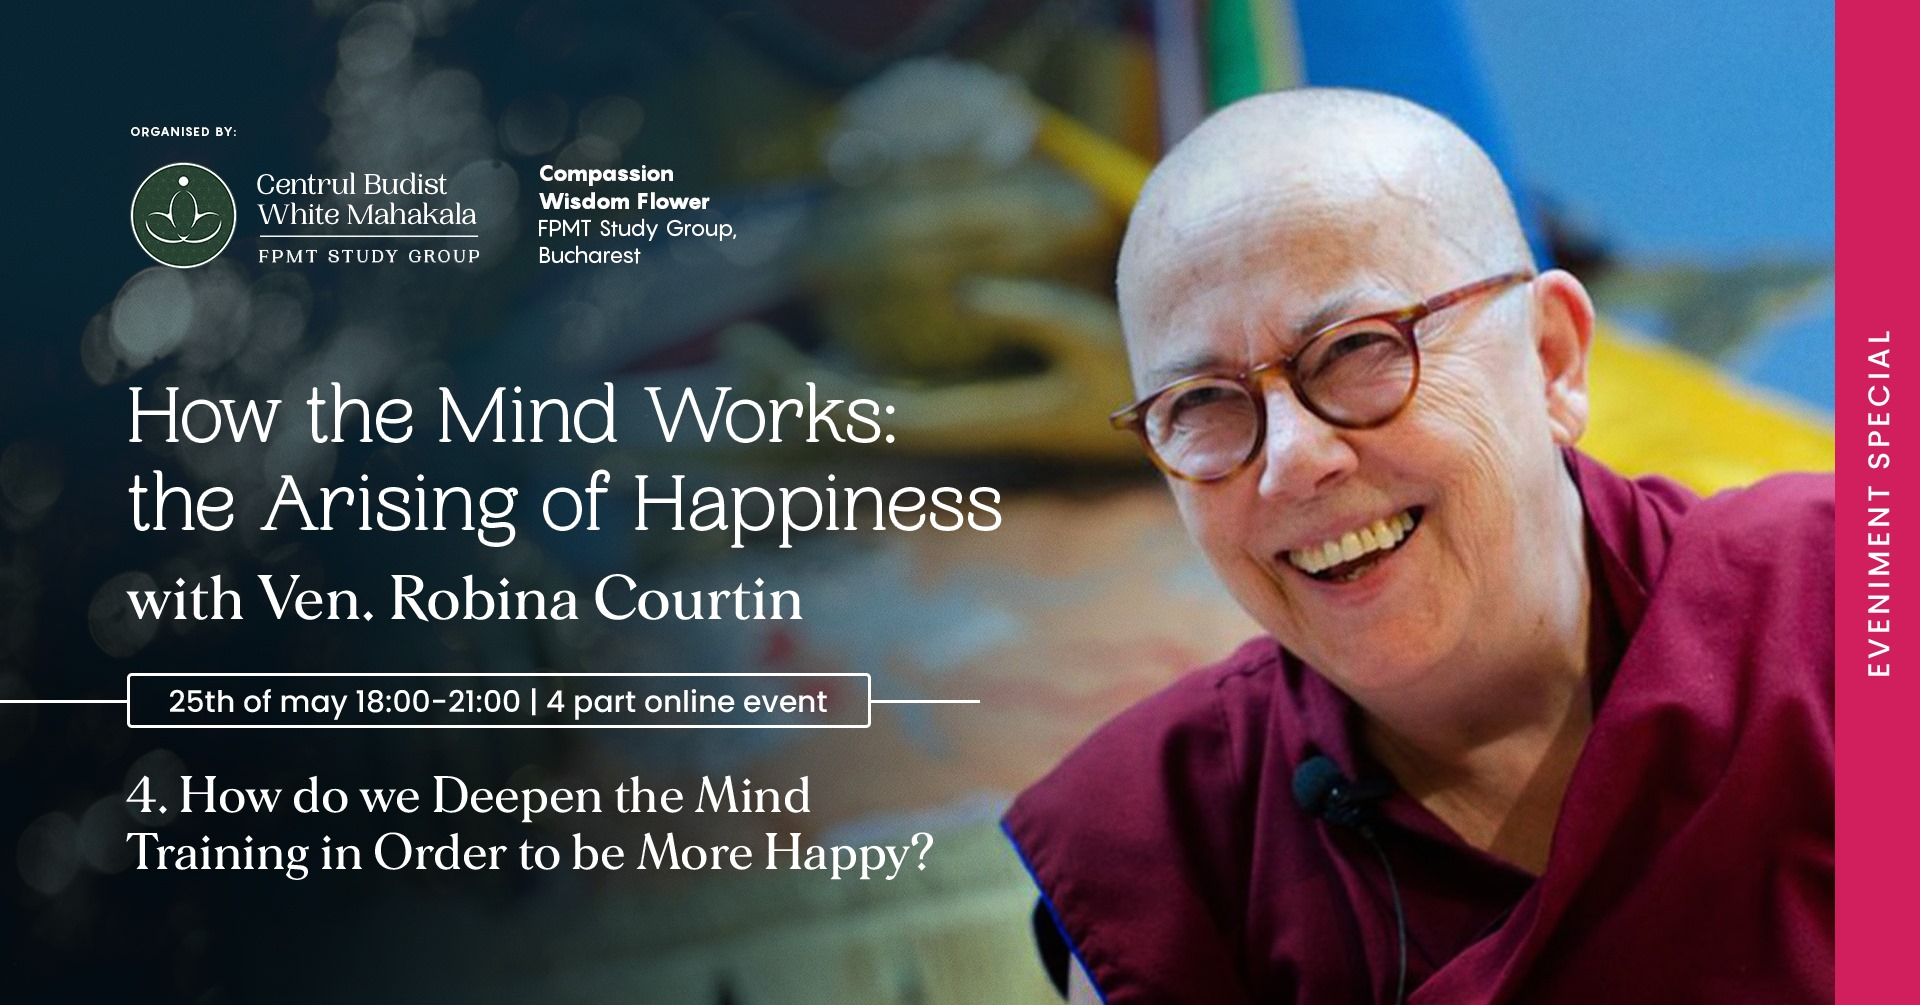 WHAT CONFUSES US IN FINDING HAPPINESS?  with Venerable Robina Courtin